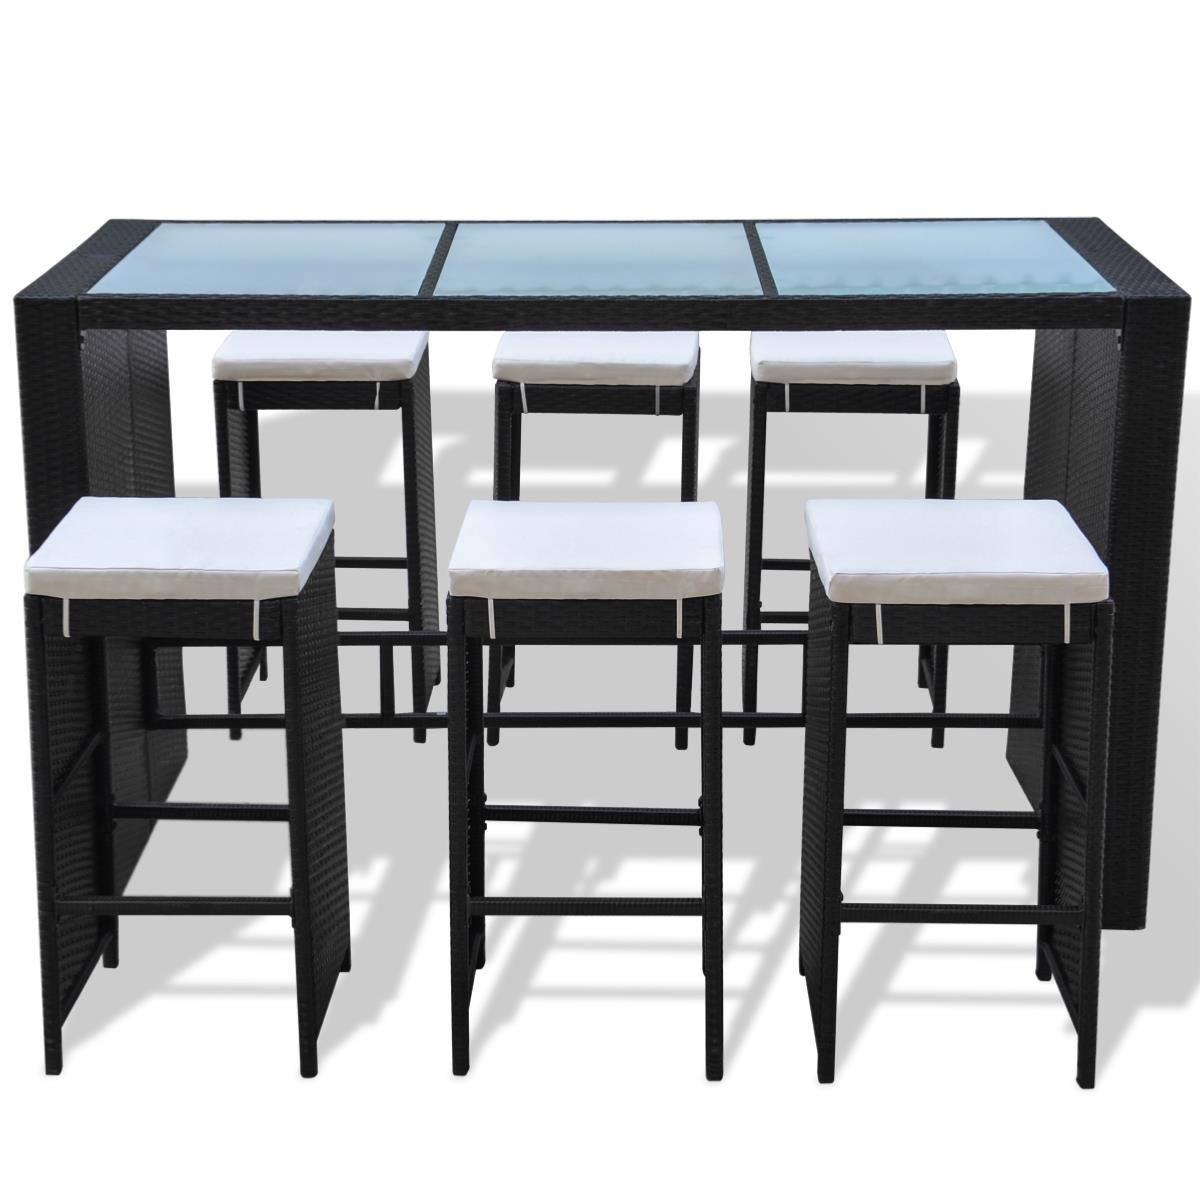 bar jardin r sine tress e noir 6 personnes mod le hawai. Black Bedroom Furniture Sets. Home Design Ideas